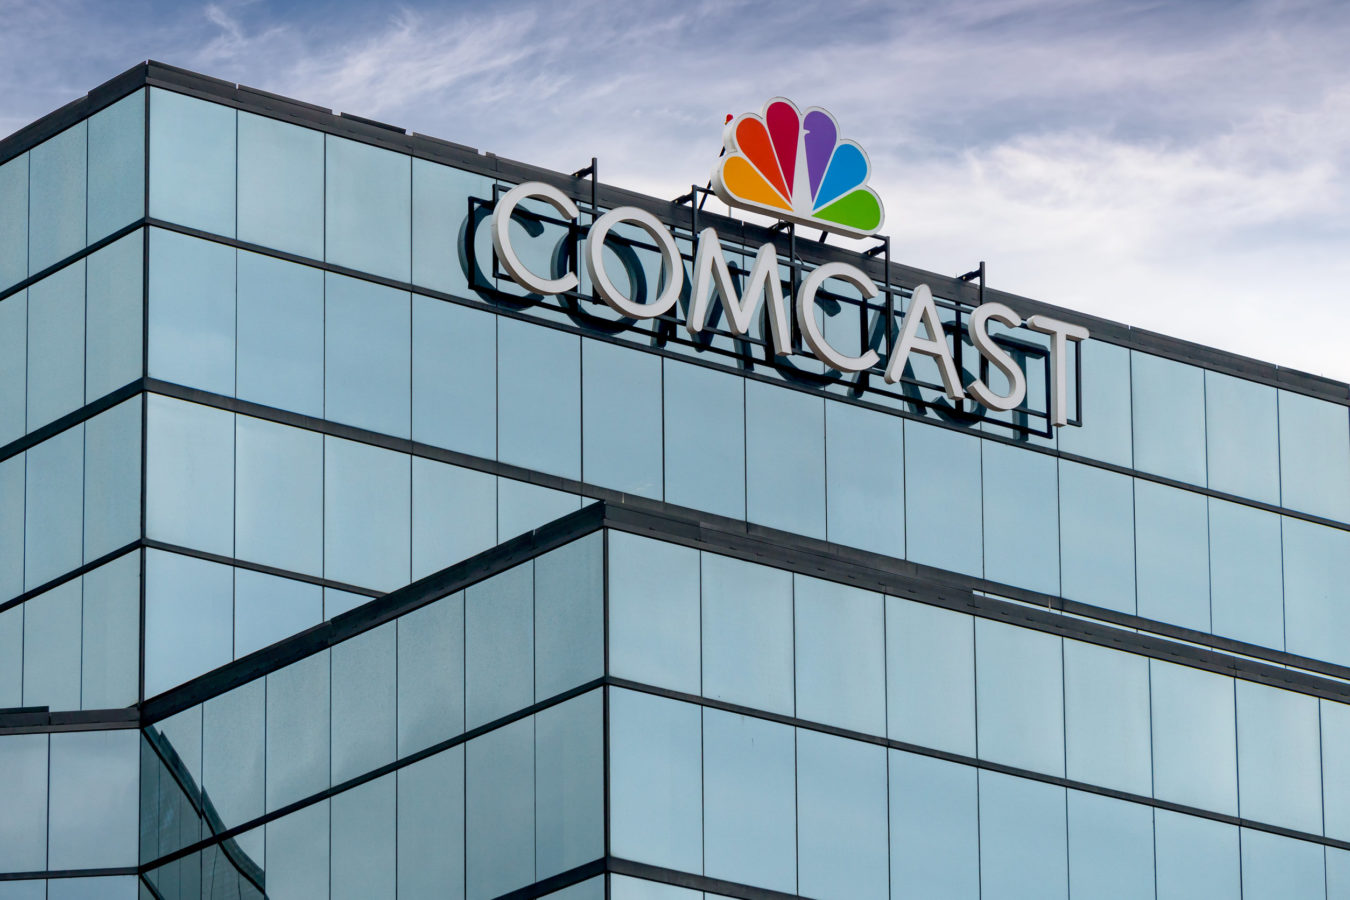 A watch glass is a piece of glass that has a slight concave design. Comcast Sky lancia la TV in streaming Sky Glass - Sapere Today